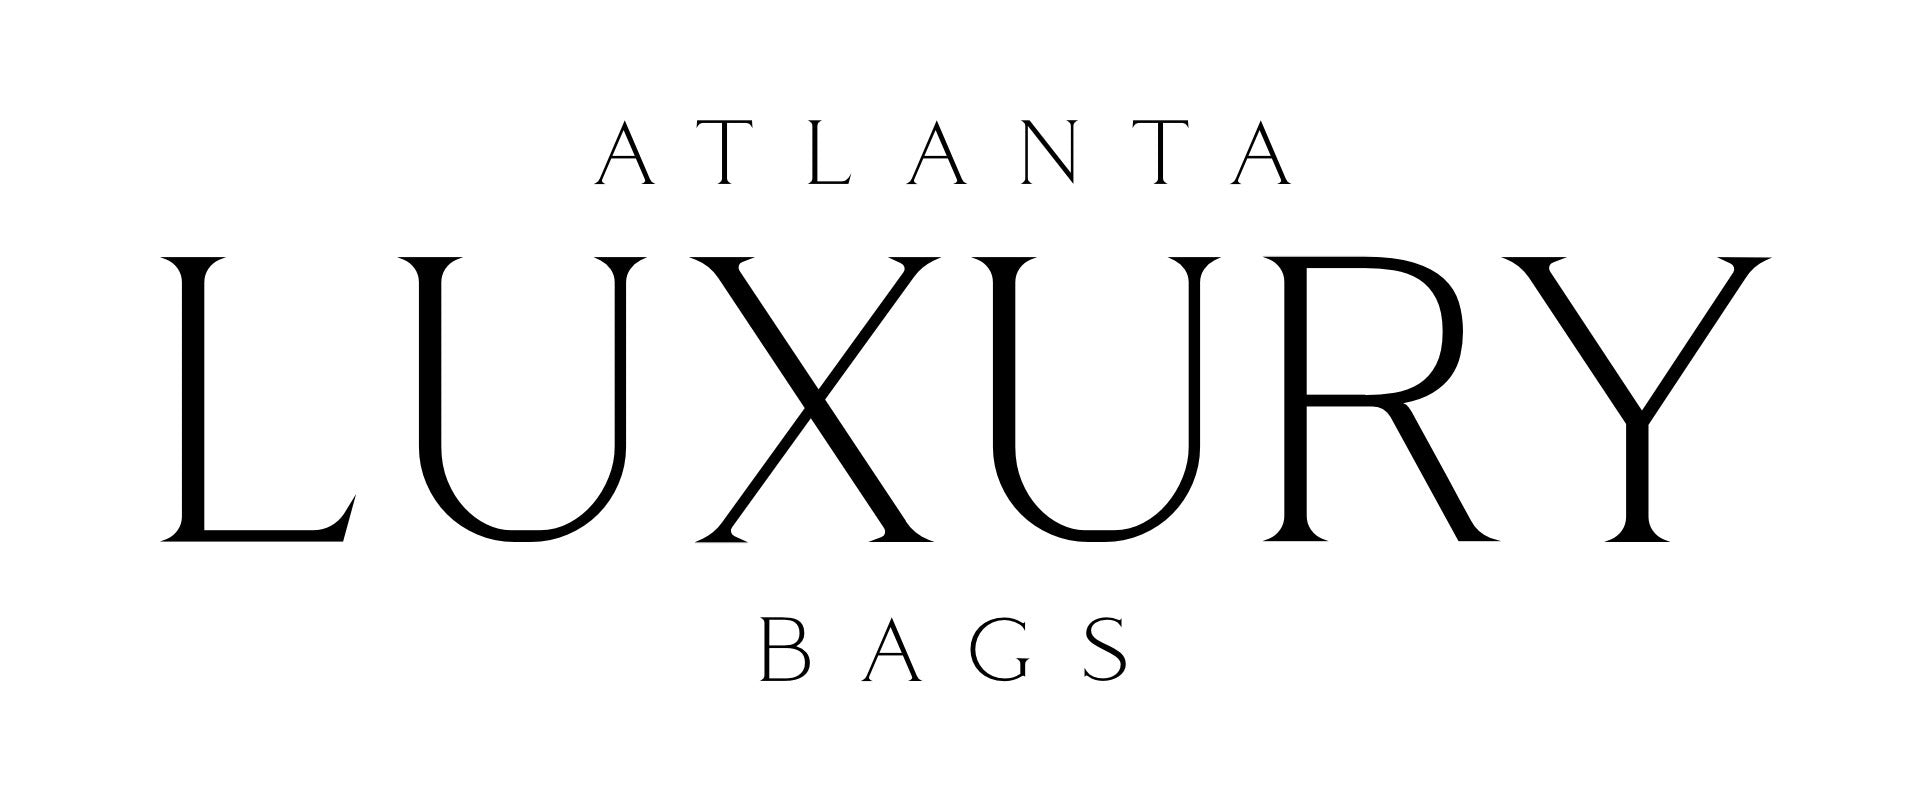 Atlanta Luxury Bags